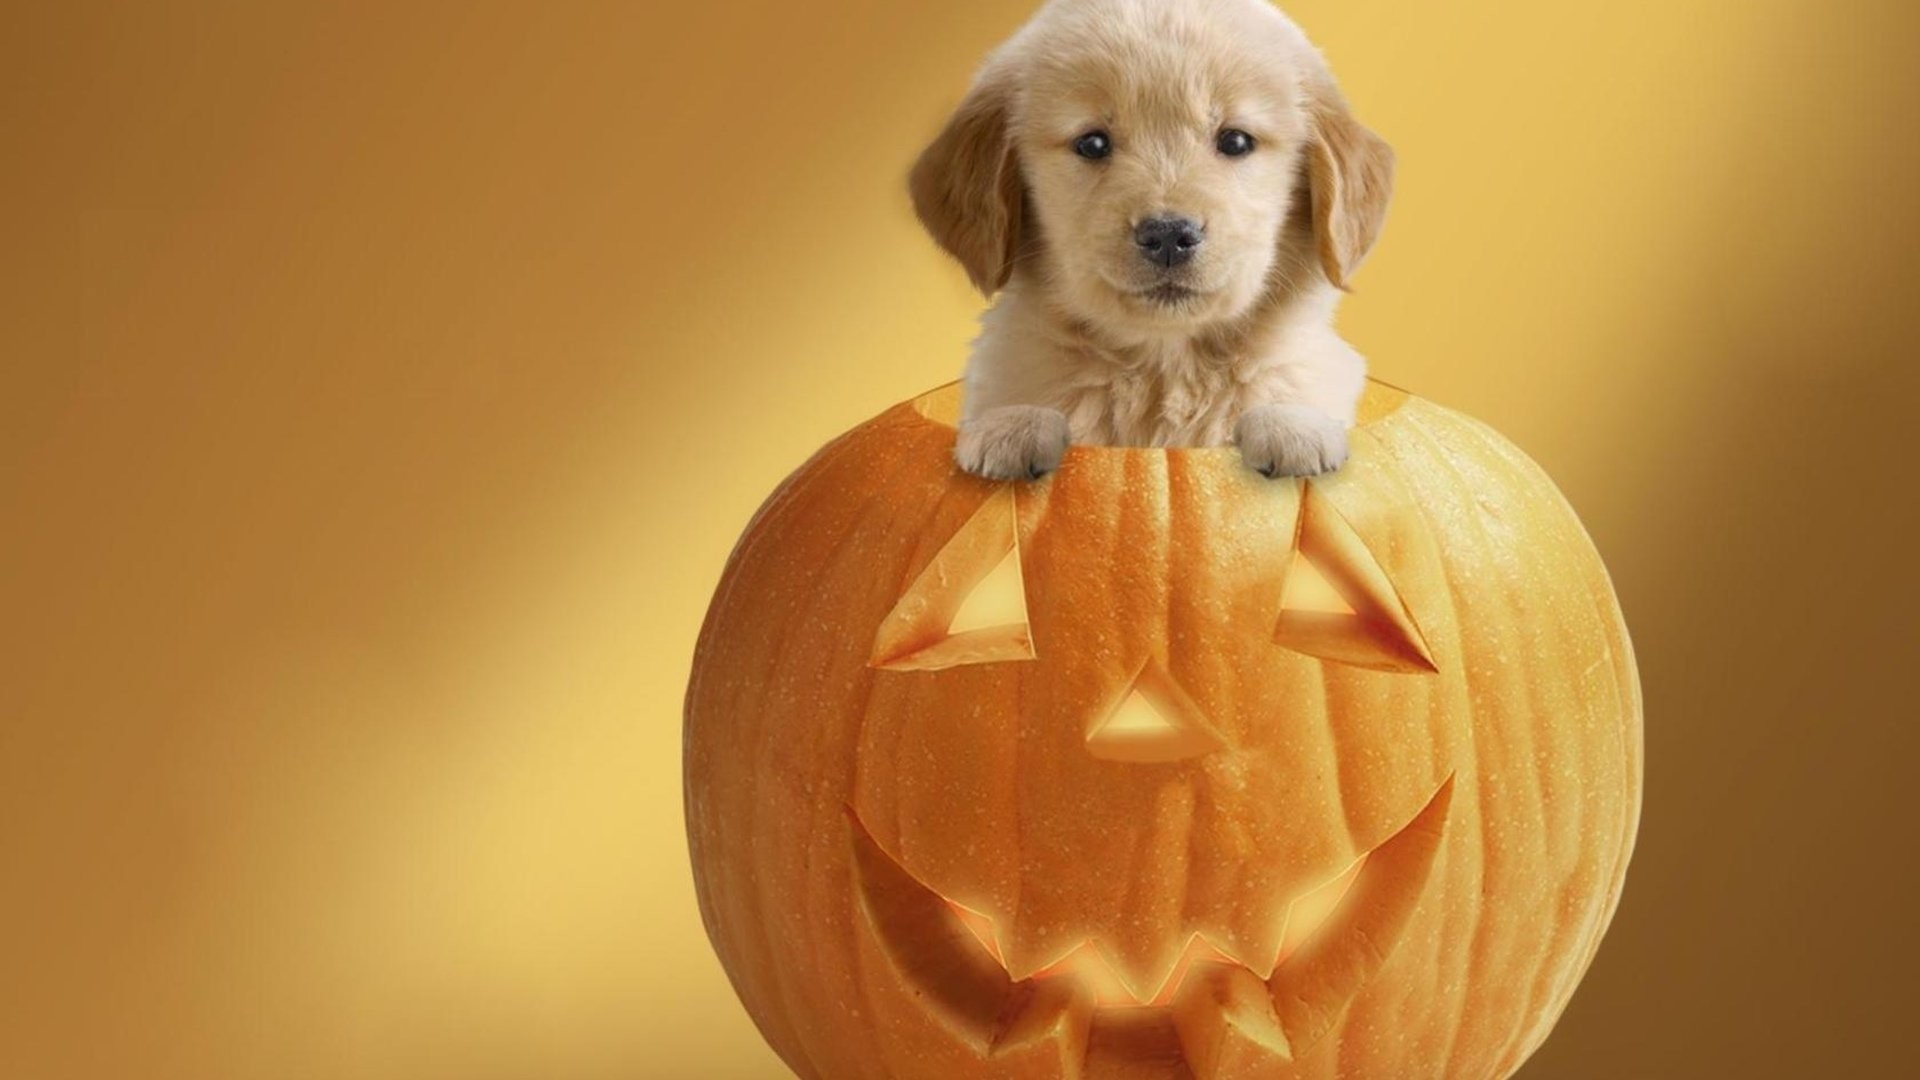 Cute Halloween Wallpapers 62 images 1920x1080